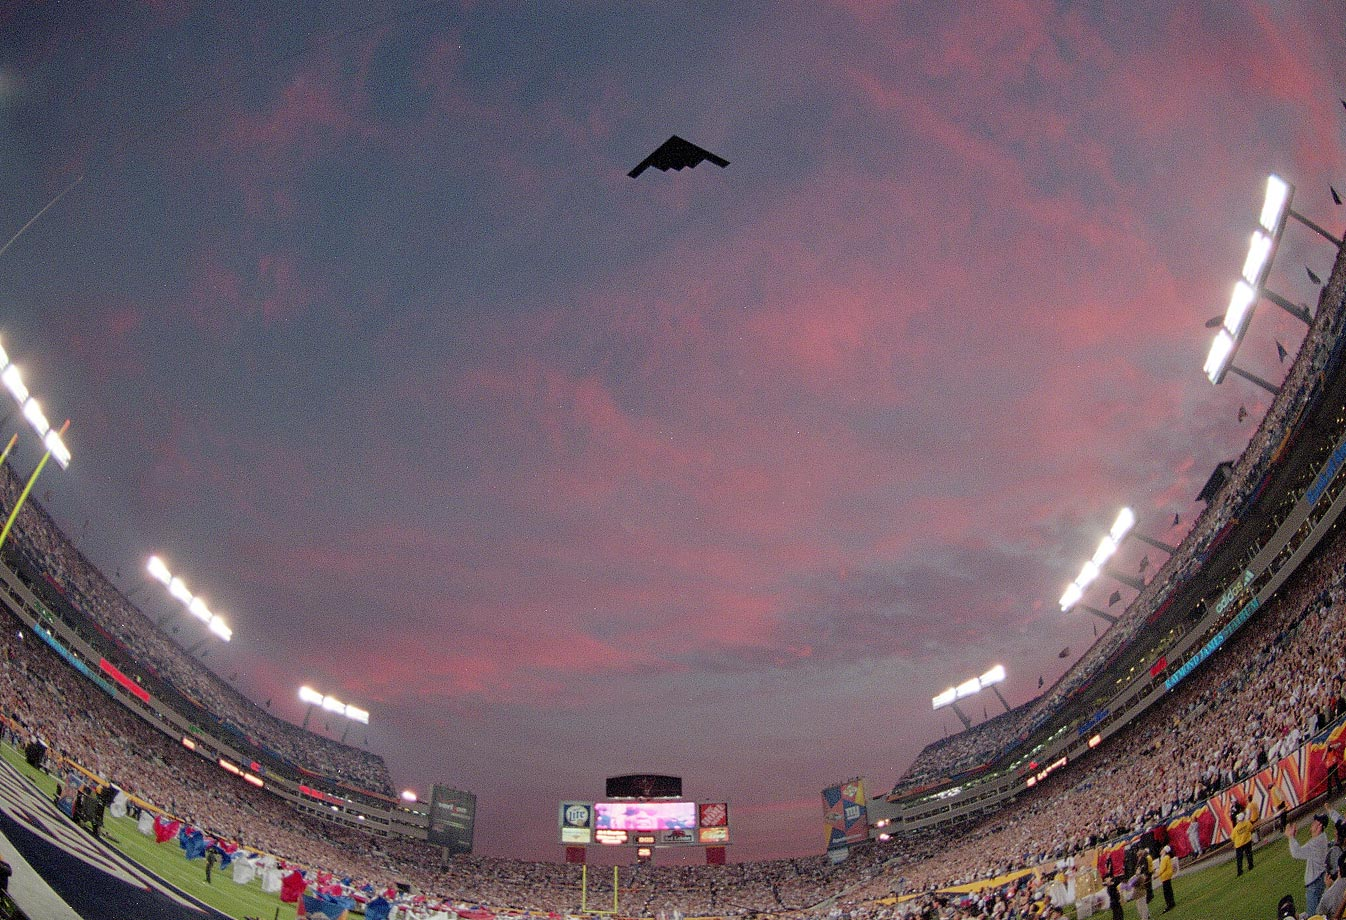 A Stealth bomber flies over Raymond James Stadium in Tampa, Fla., before the Super Bowl XXXV matchup between the Baltimore Ravens and New York Giants.